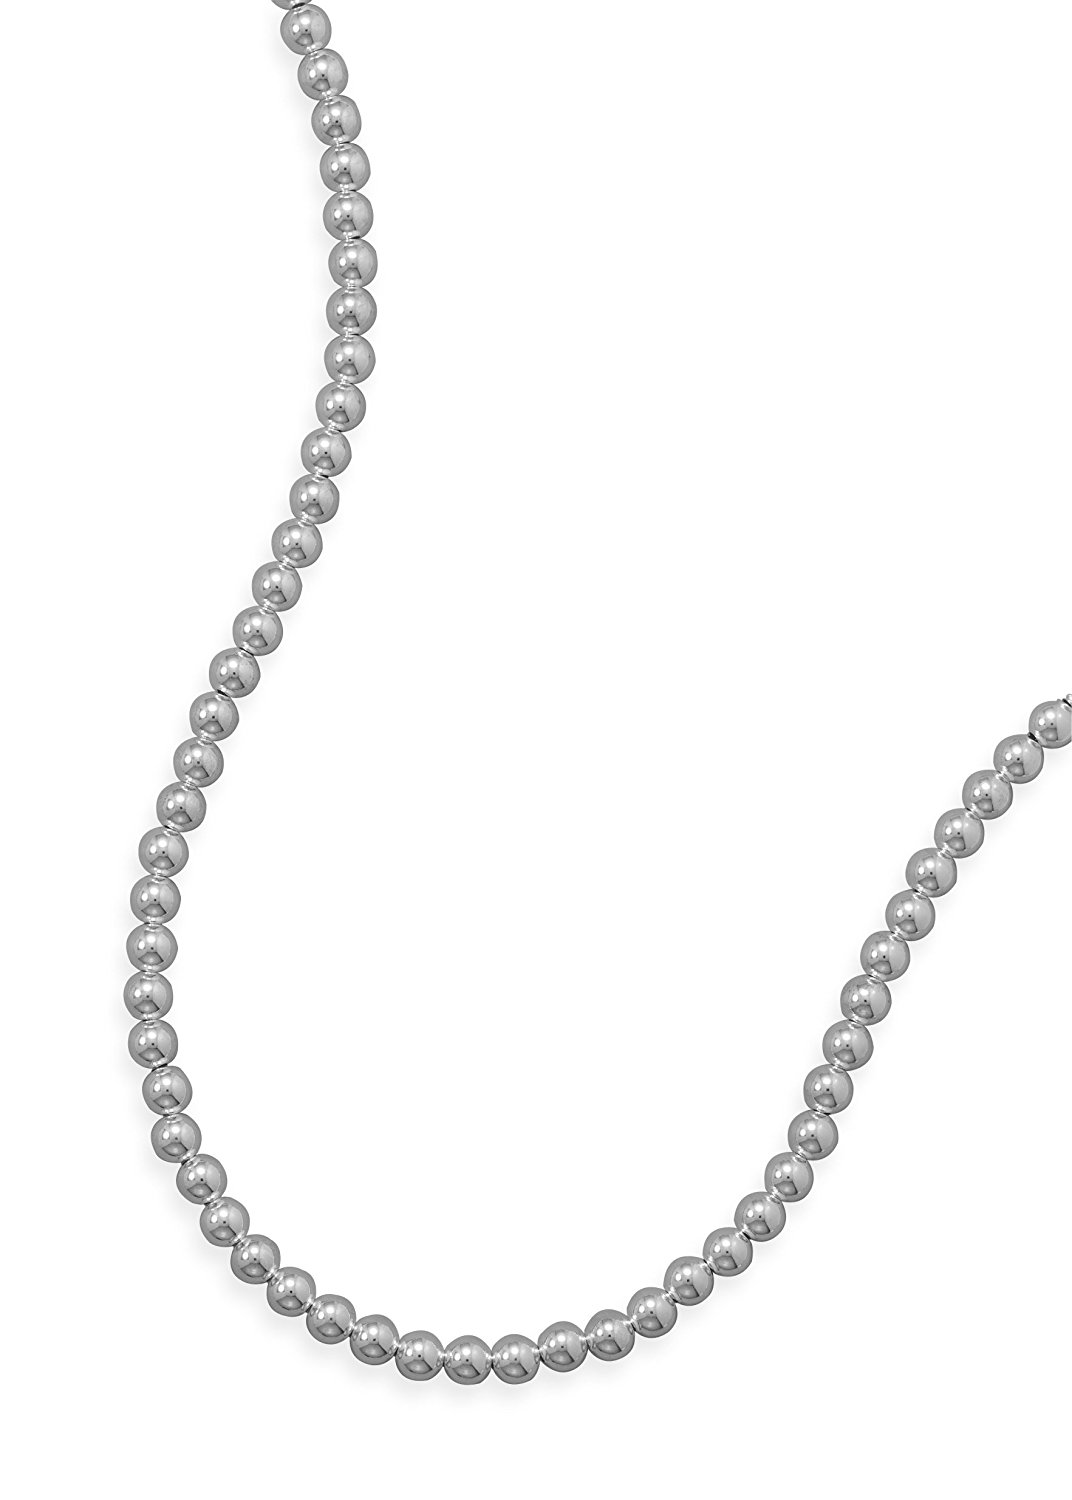 Sterling Silver Necklace, Lobster Clasp, 7mm Bead/Ball